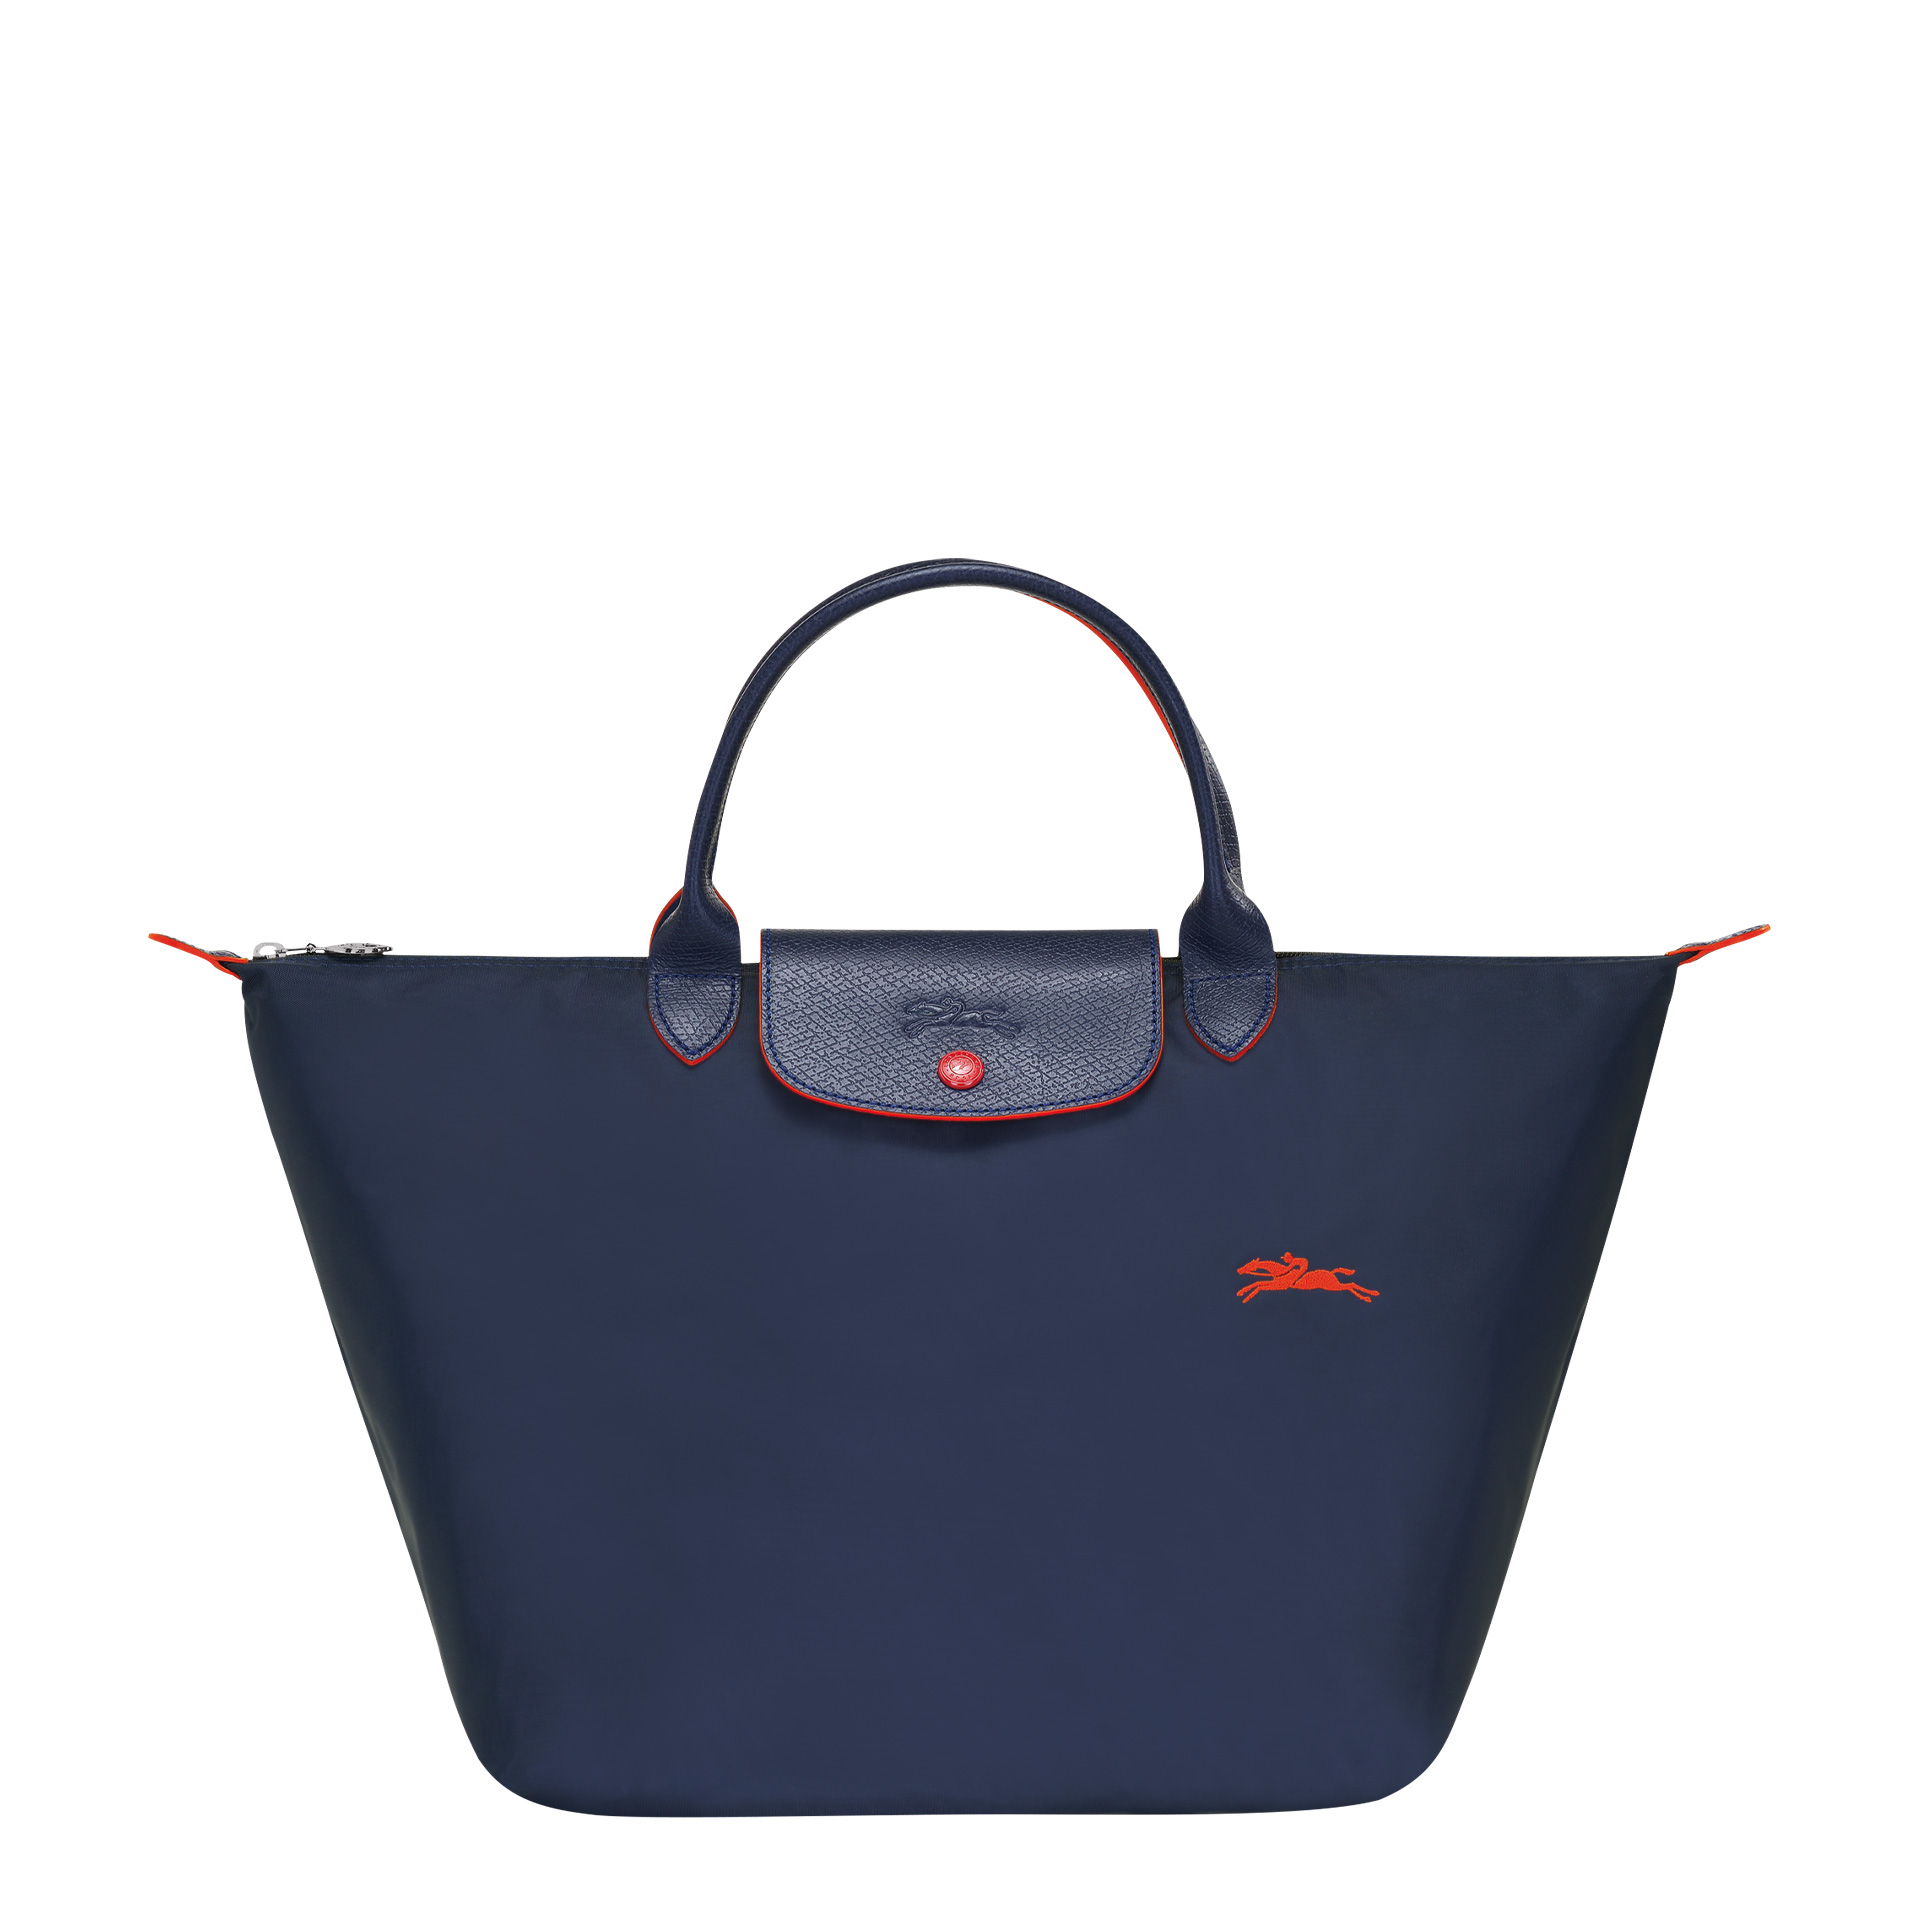 Le Pliage Club Handtasche M